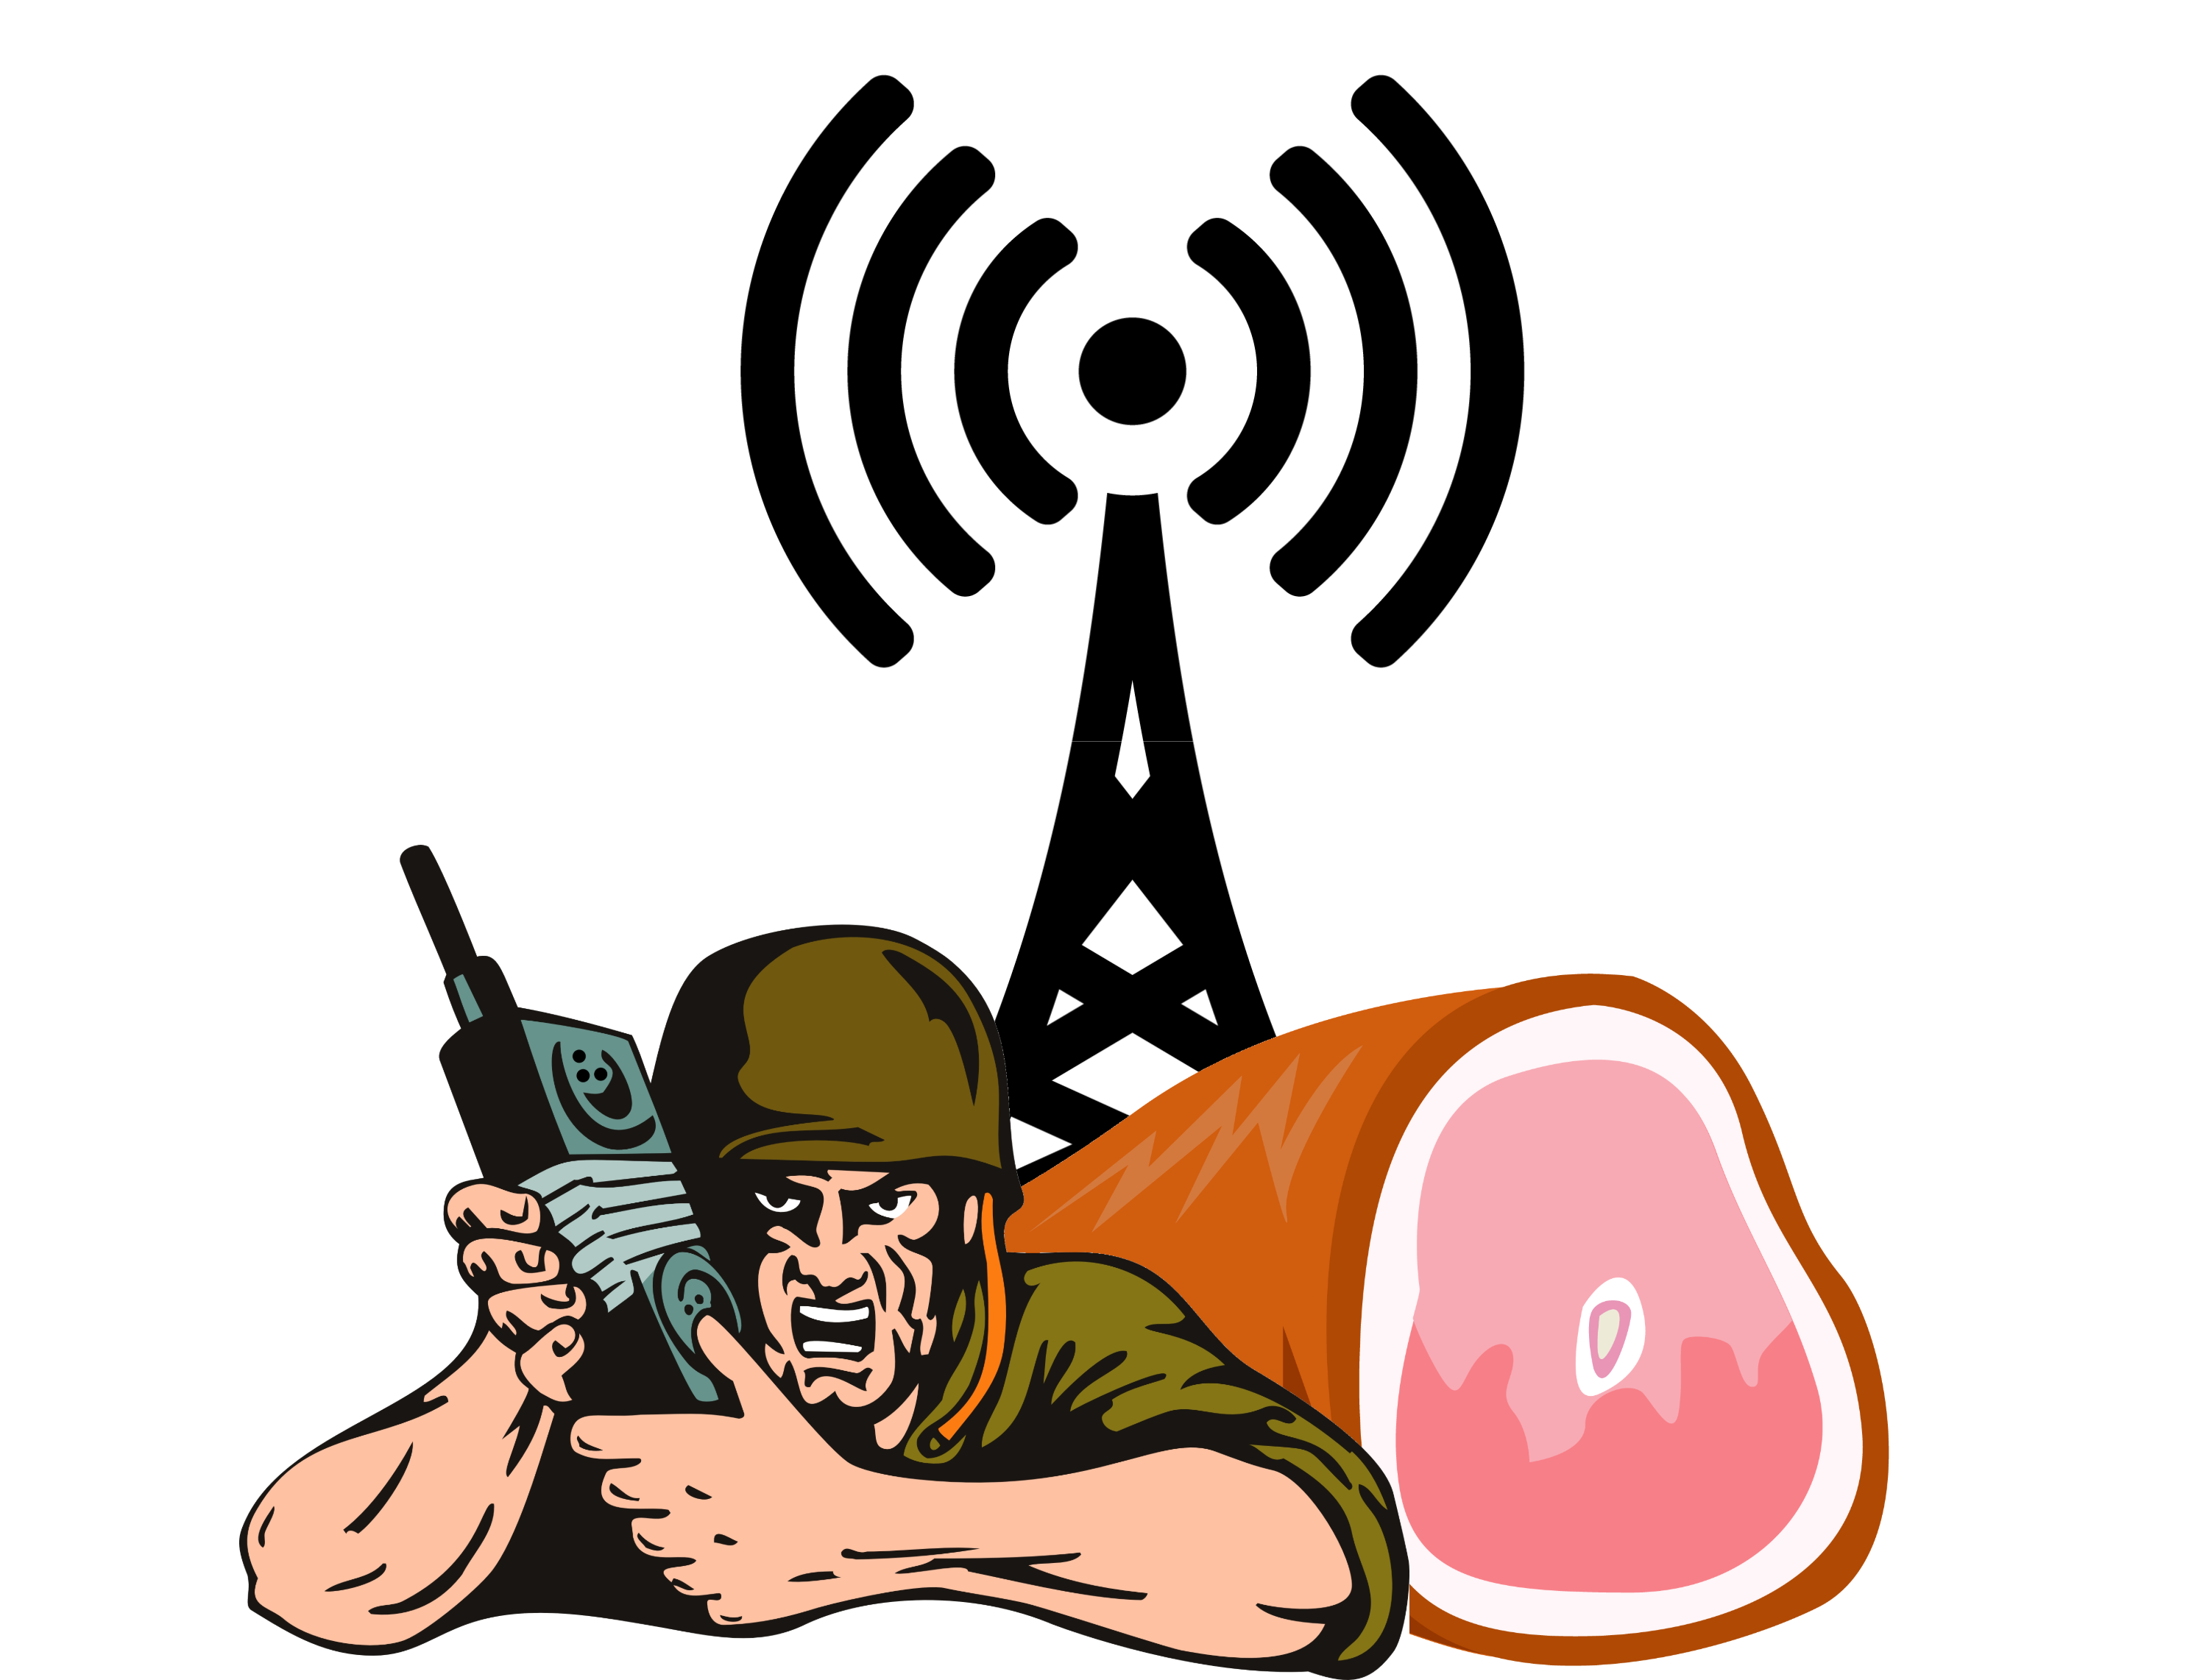 Soldier holding radio in front of a ham hawk and radio tower